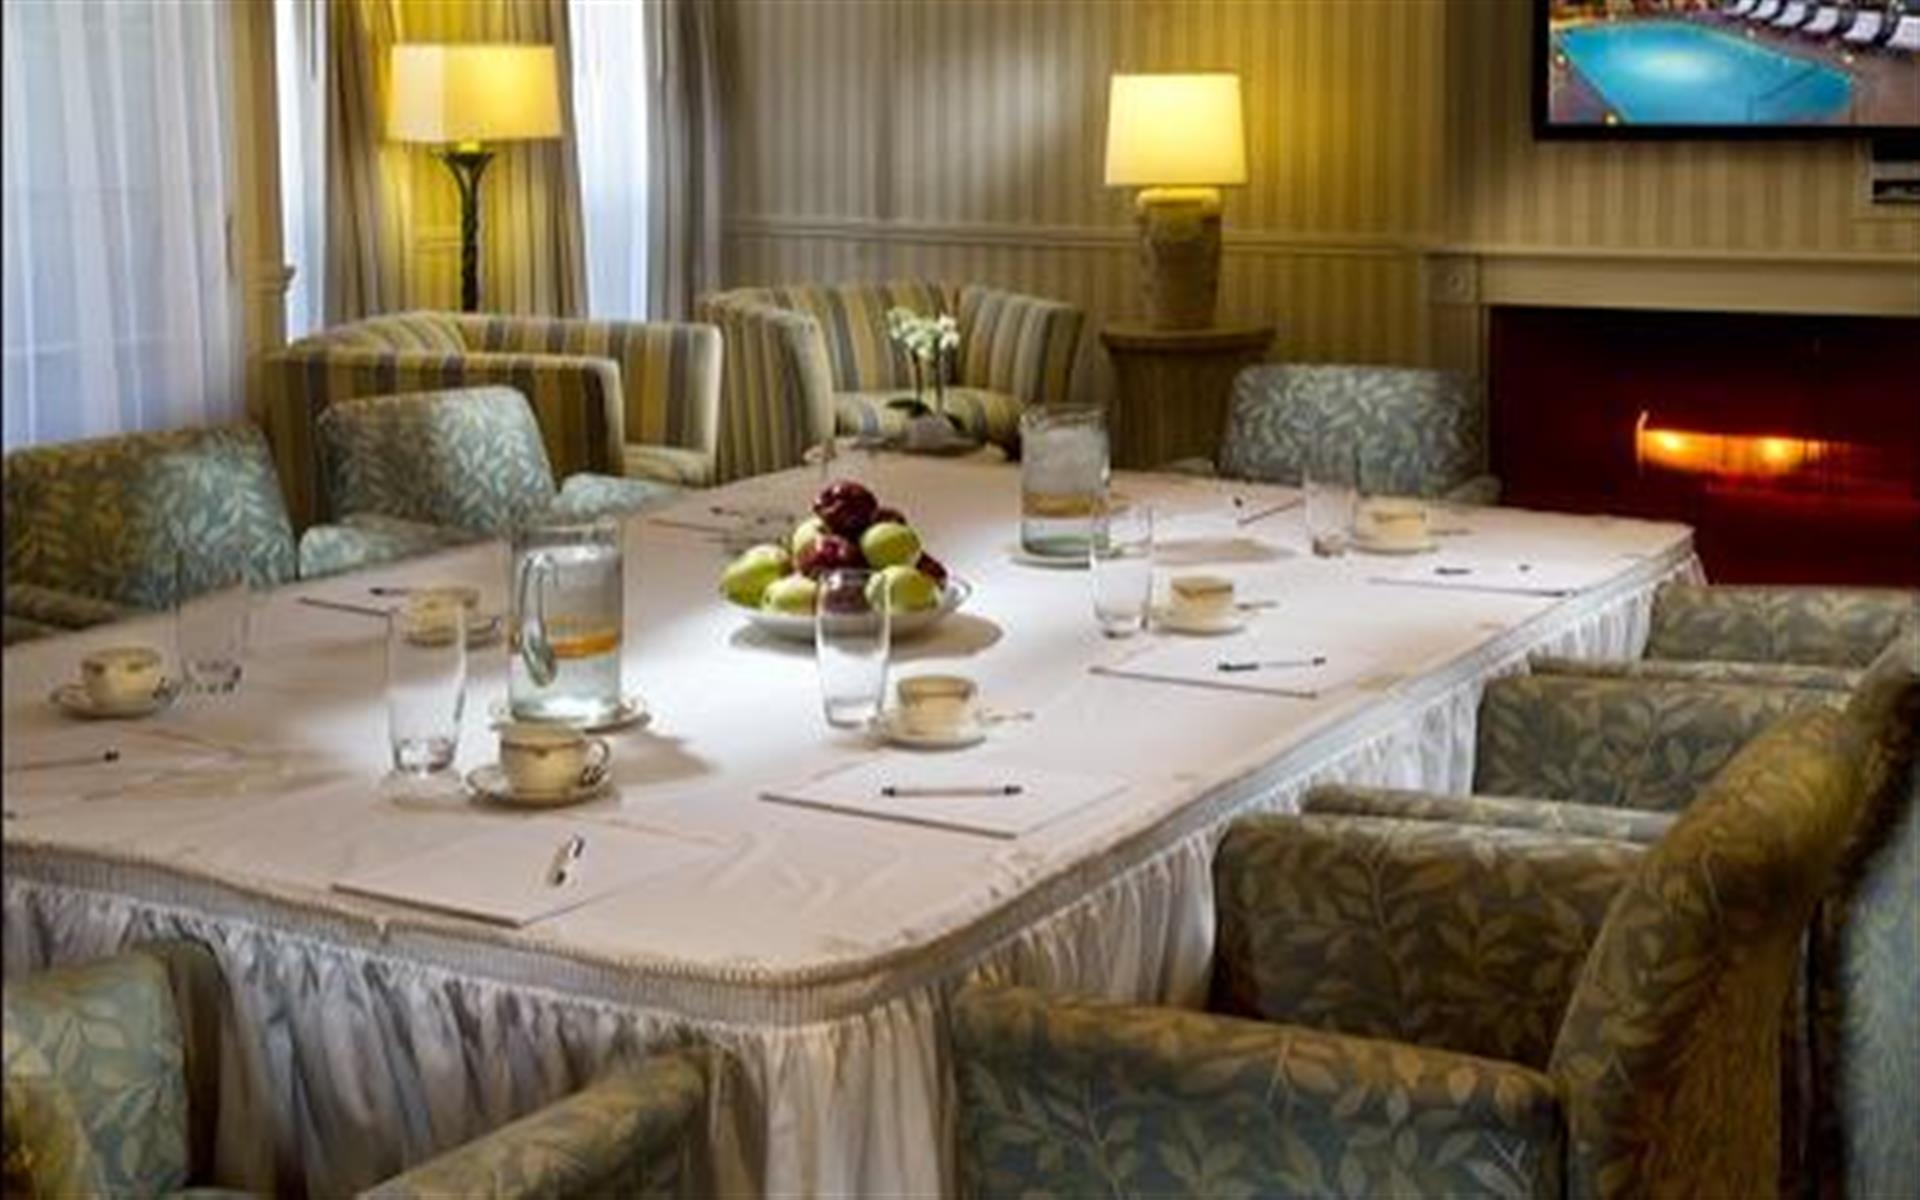 Le Parc Suite Hotel - Meeting Suite 1